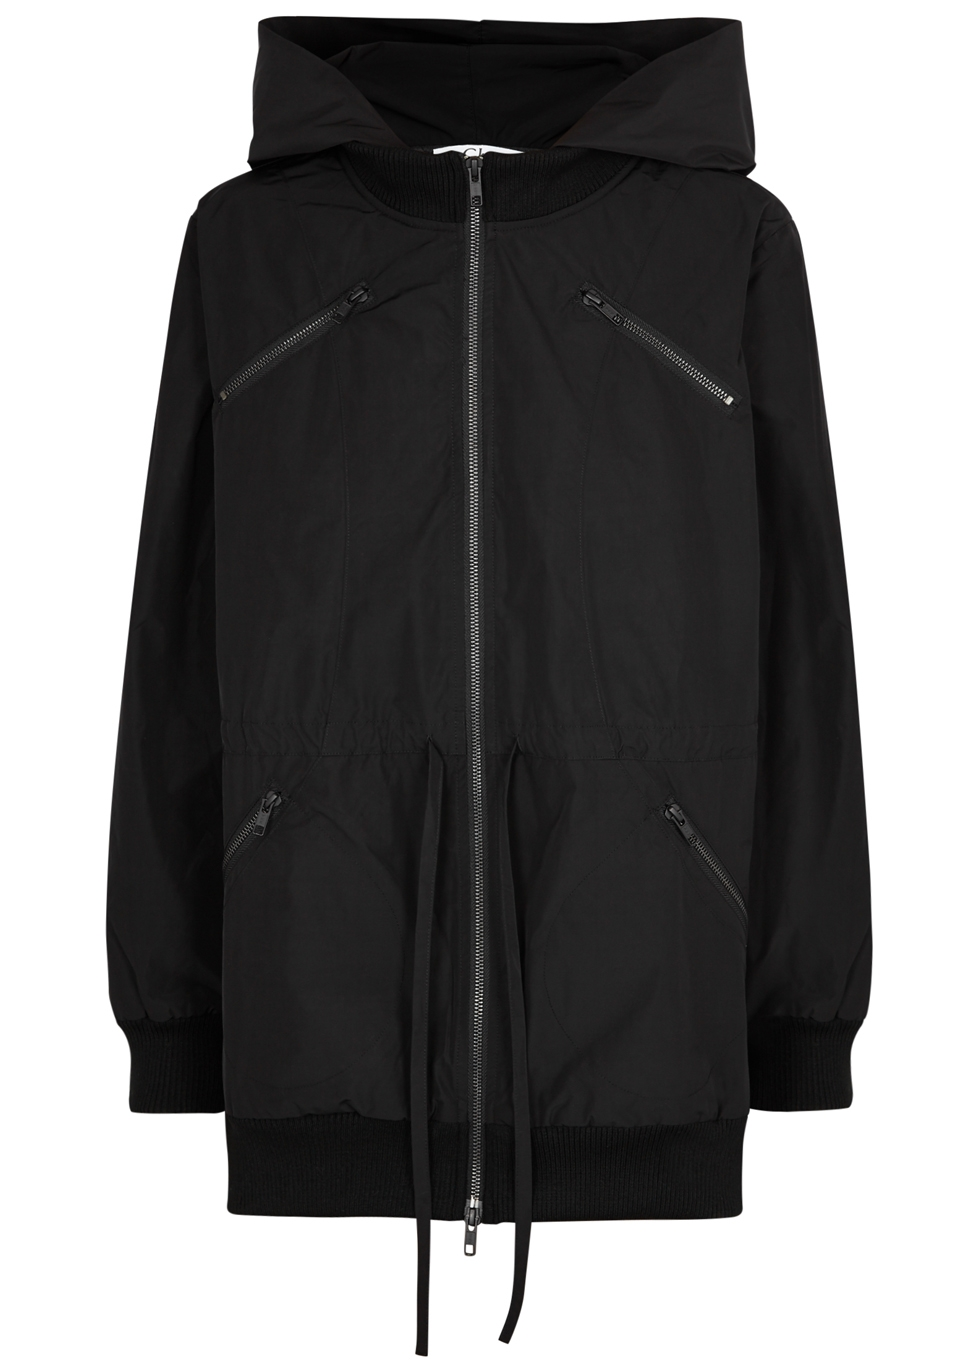 CLU BLACK HOODED SHELL JACKET